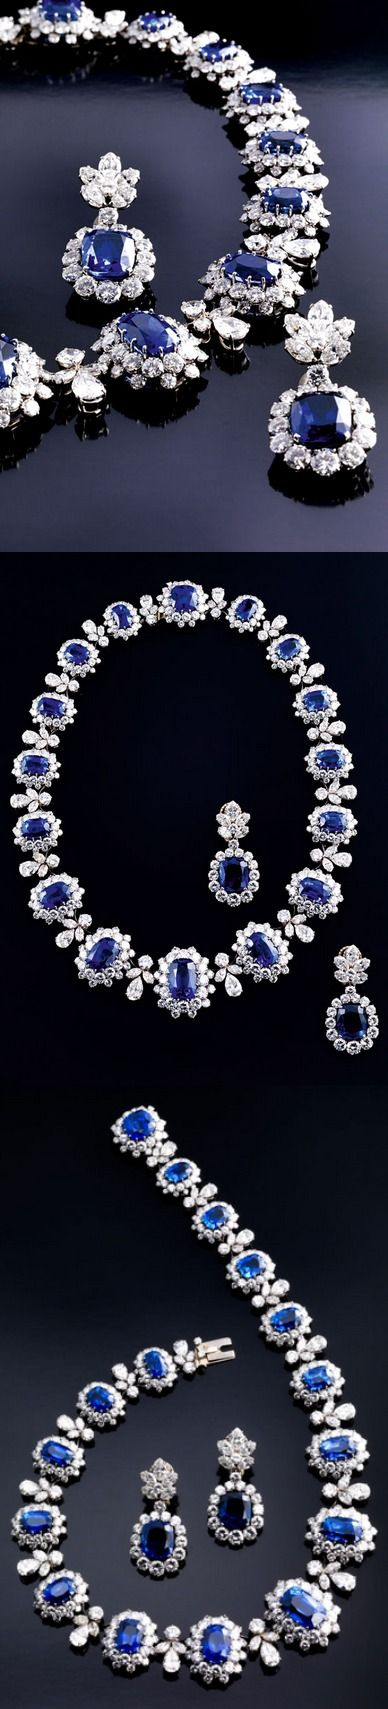 Diamond & sapphire necklace & earrings, Bulgari.